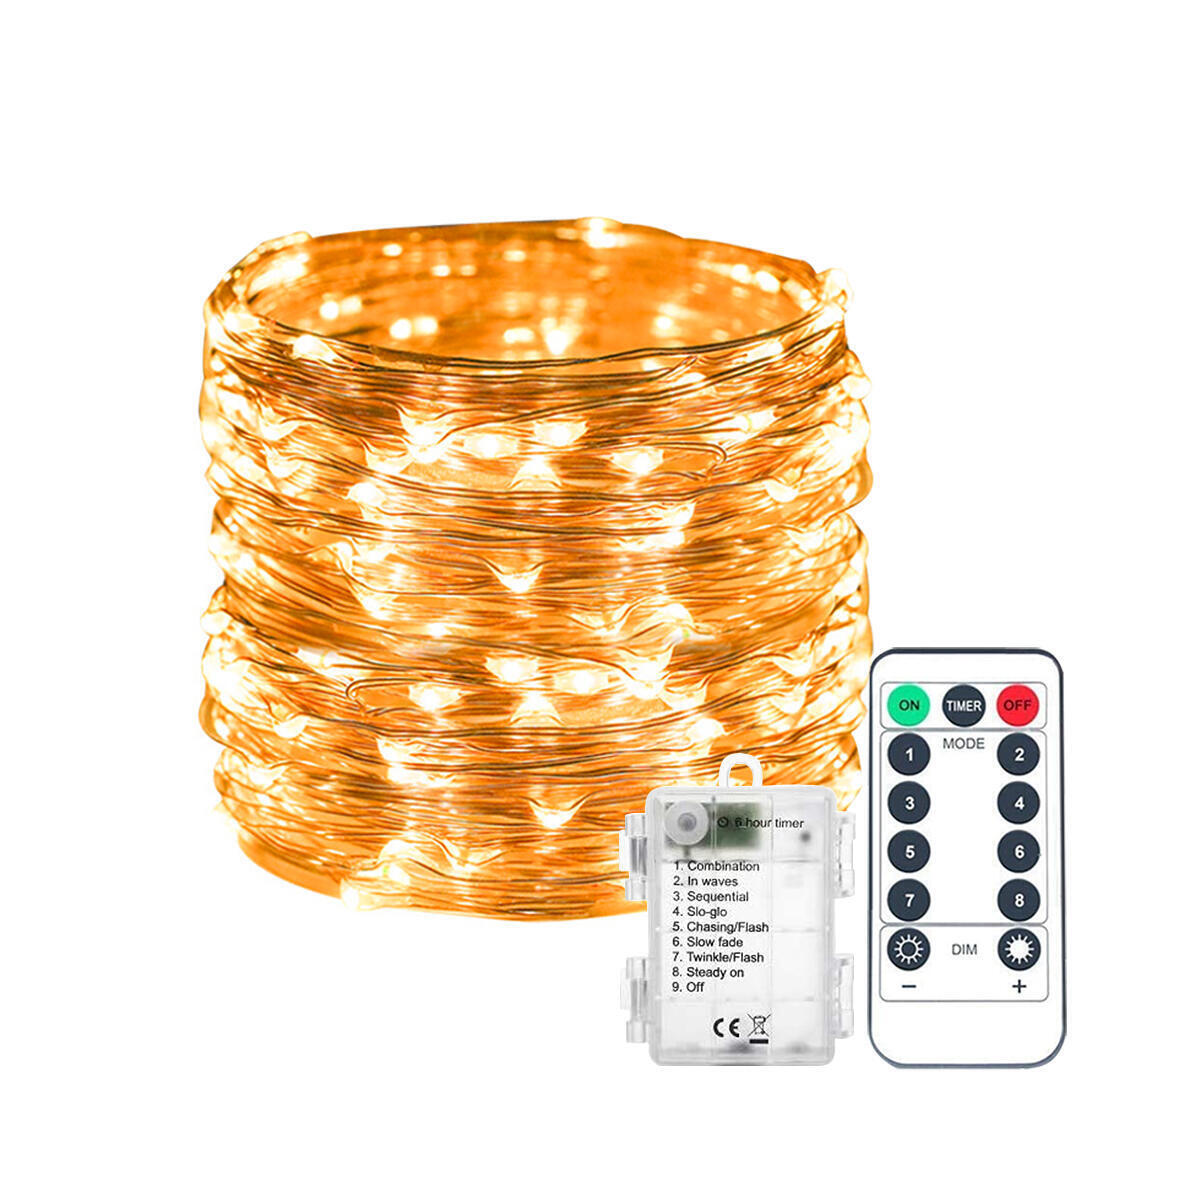 Fairy Lights, 200 LED 66 FT Copper String Light 8 Modes LED String Lights Battery Operated with Remote Control for Bedroom,Indoor,Outdoor,Christmas Decor (Warm White)